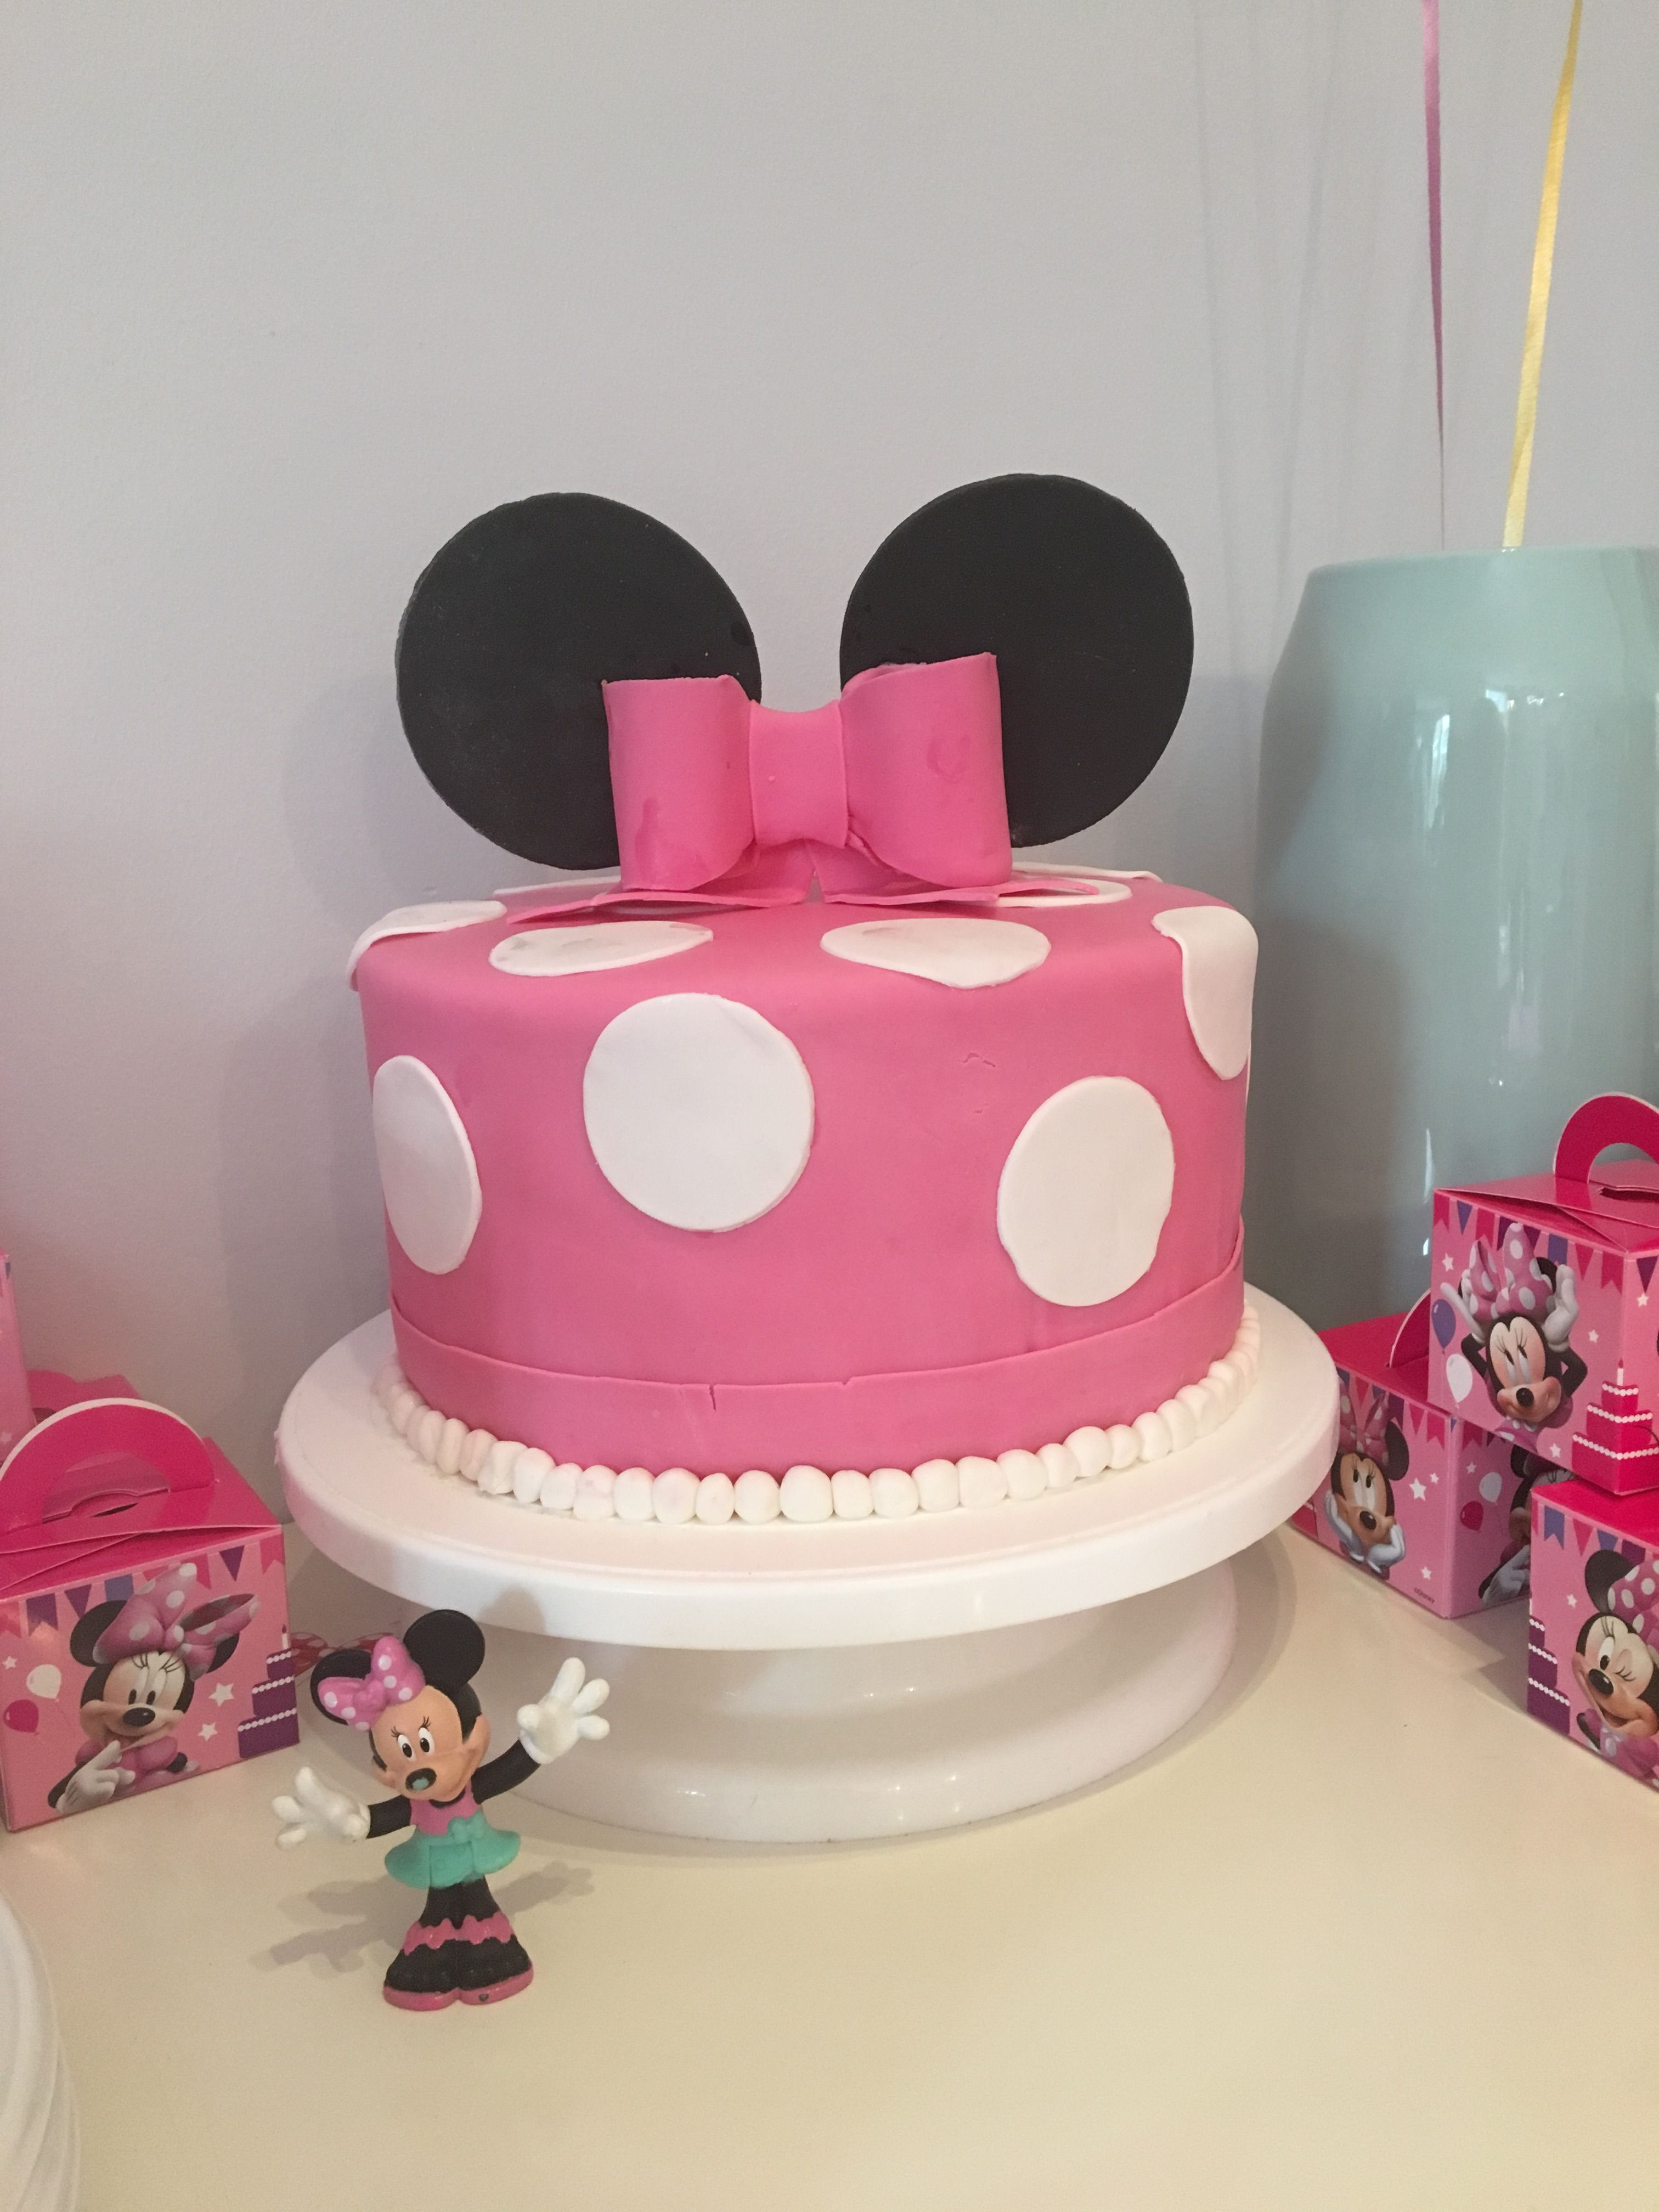 Minnie Mouse Cake 1 Layer Mouse Cake Minnie Mouse Cake Cake